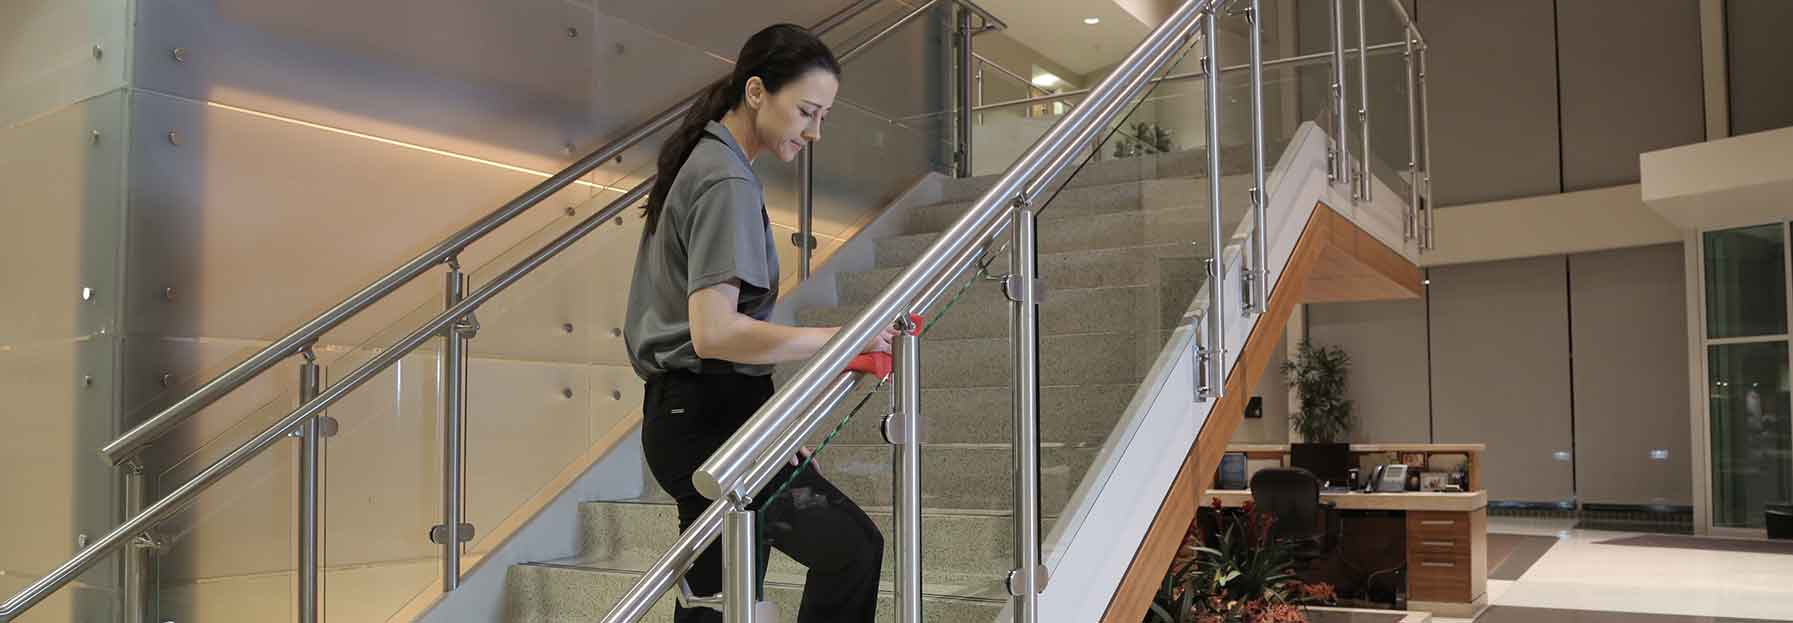 Commercial cleaning team cleaning workplace facilities